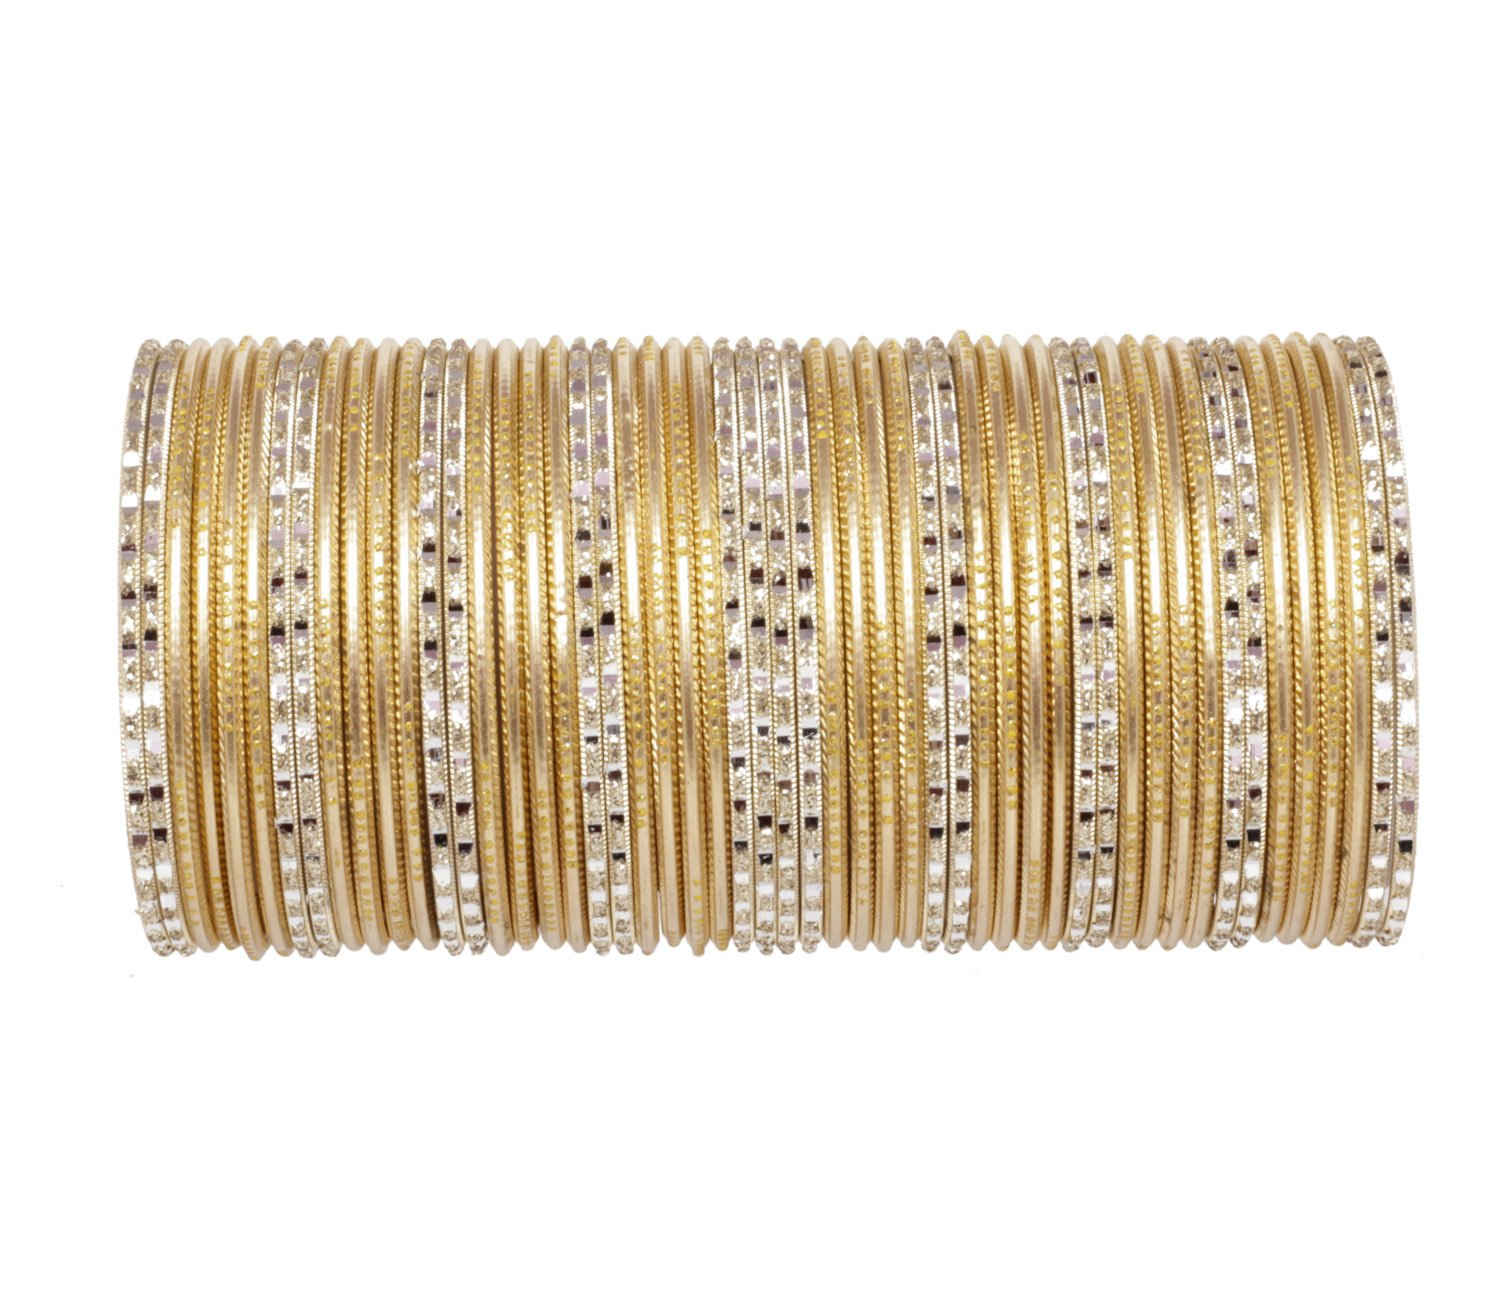 Ratna Traditional Fully Golden Wedding Bangles Set Pair Designer Fancy Gorgeous Bangles Jewellery (2.6)